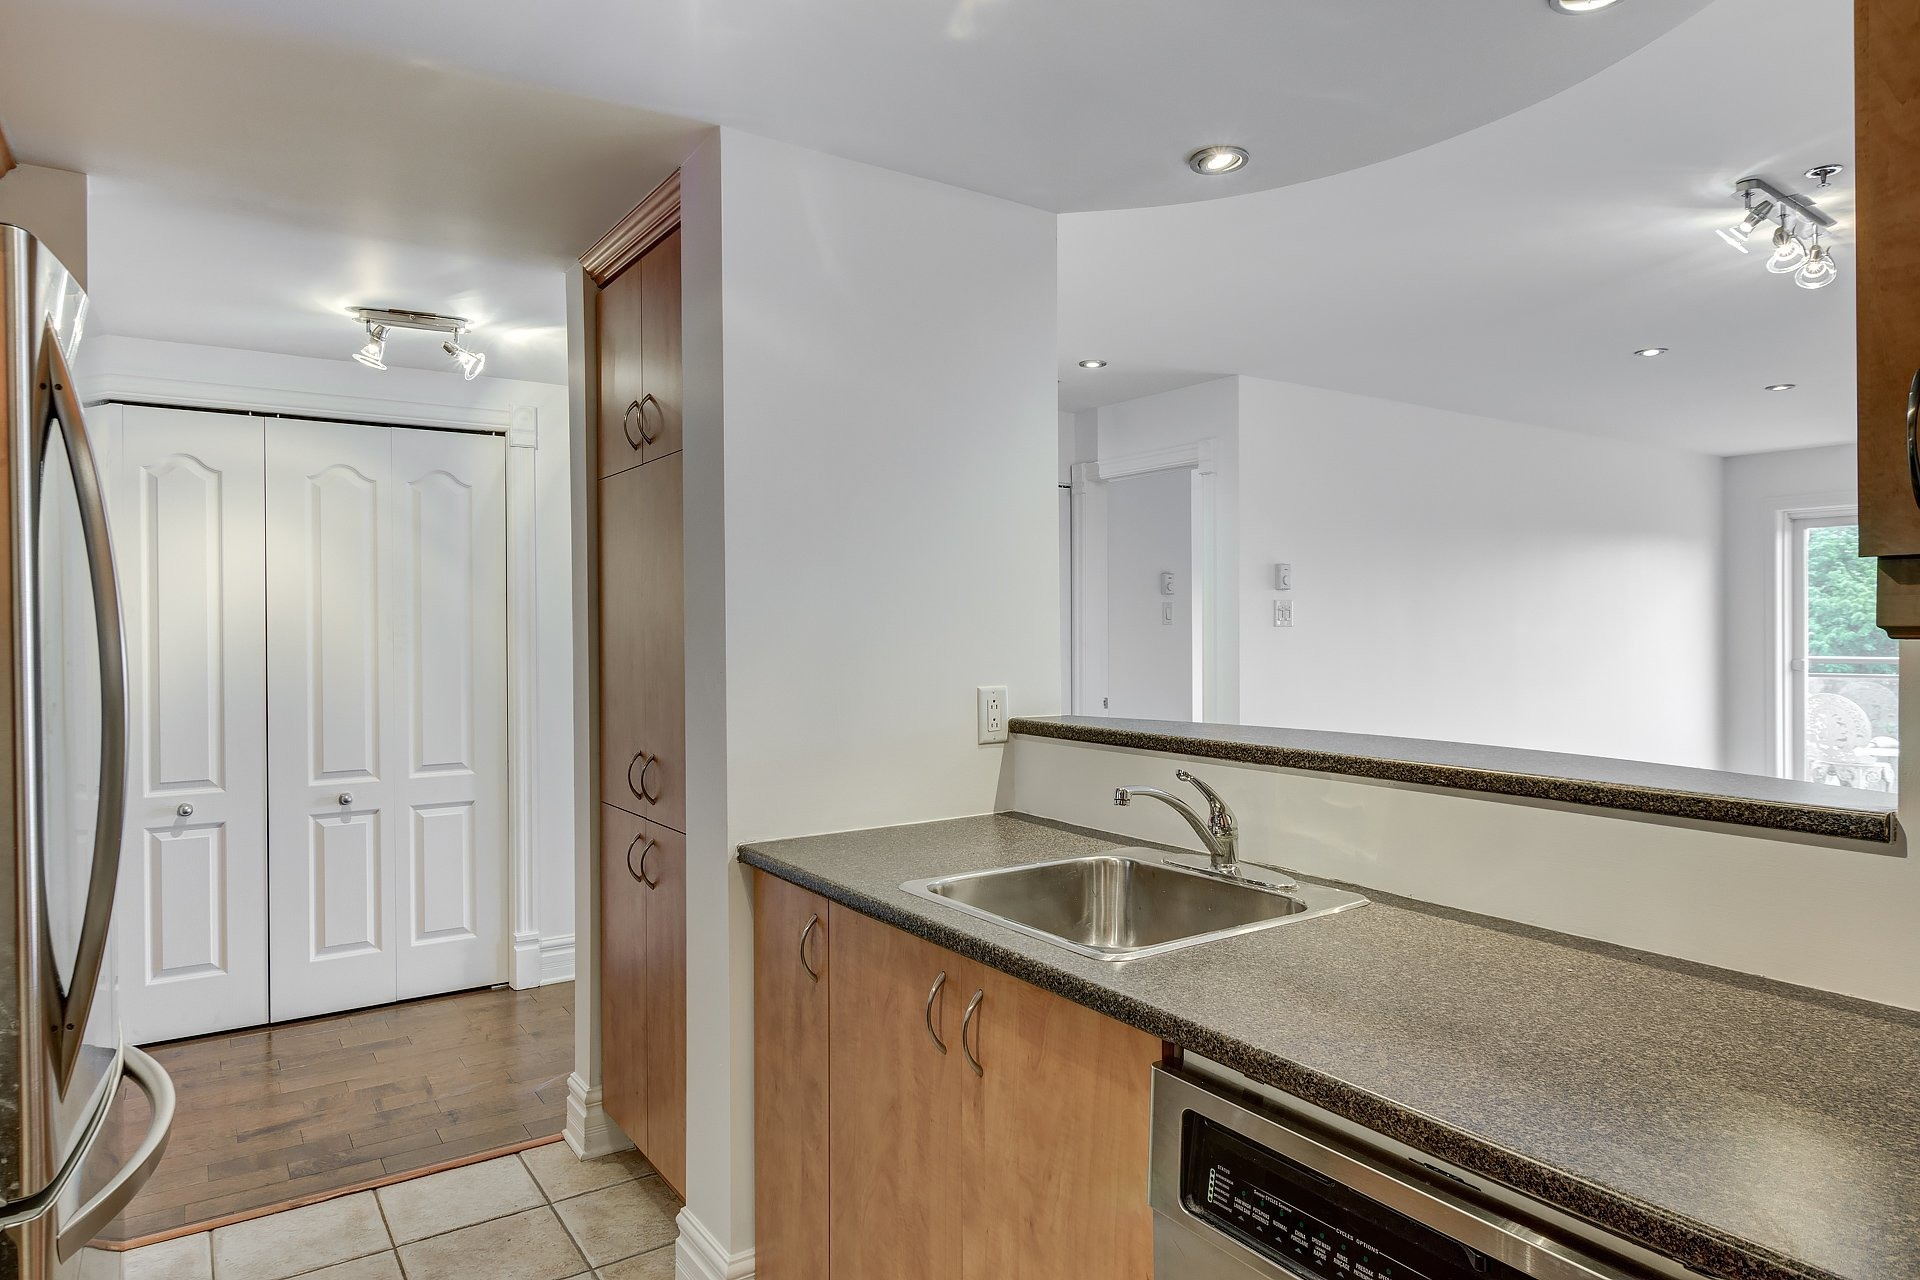 image 10 - Apartment For sale Montréal Ville-Marie  - 4 rooms